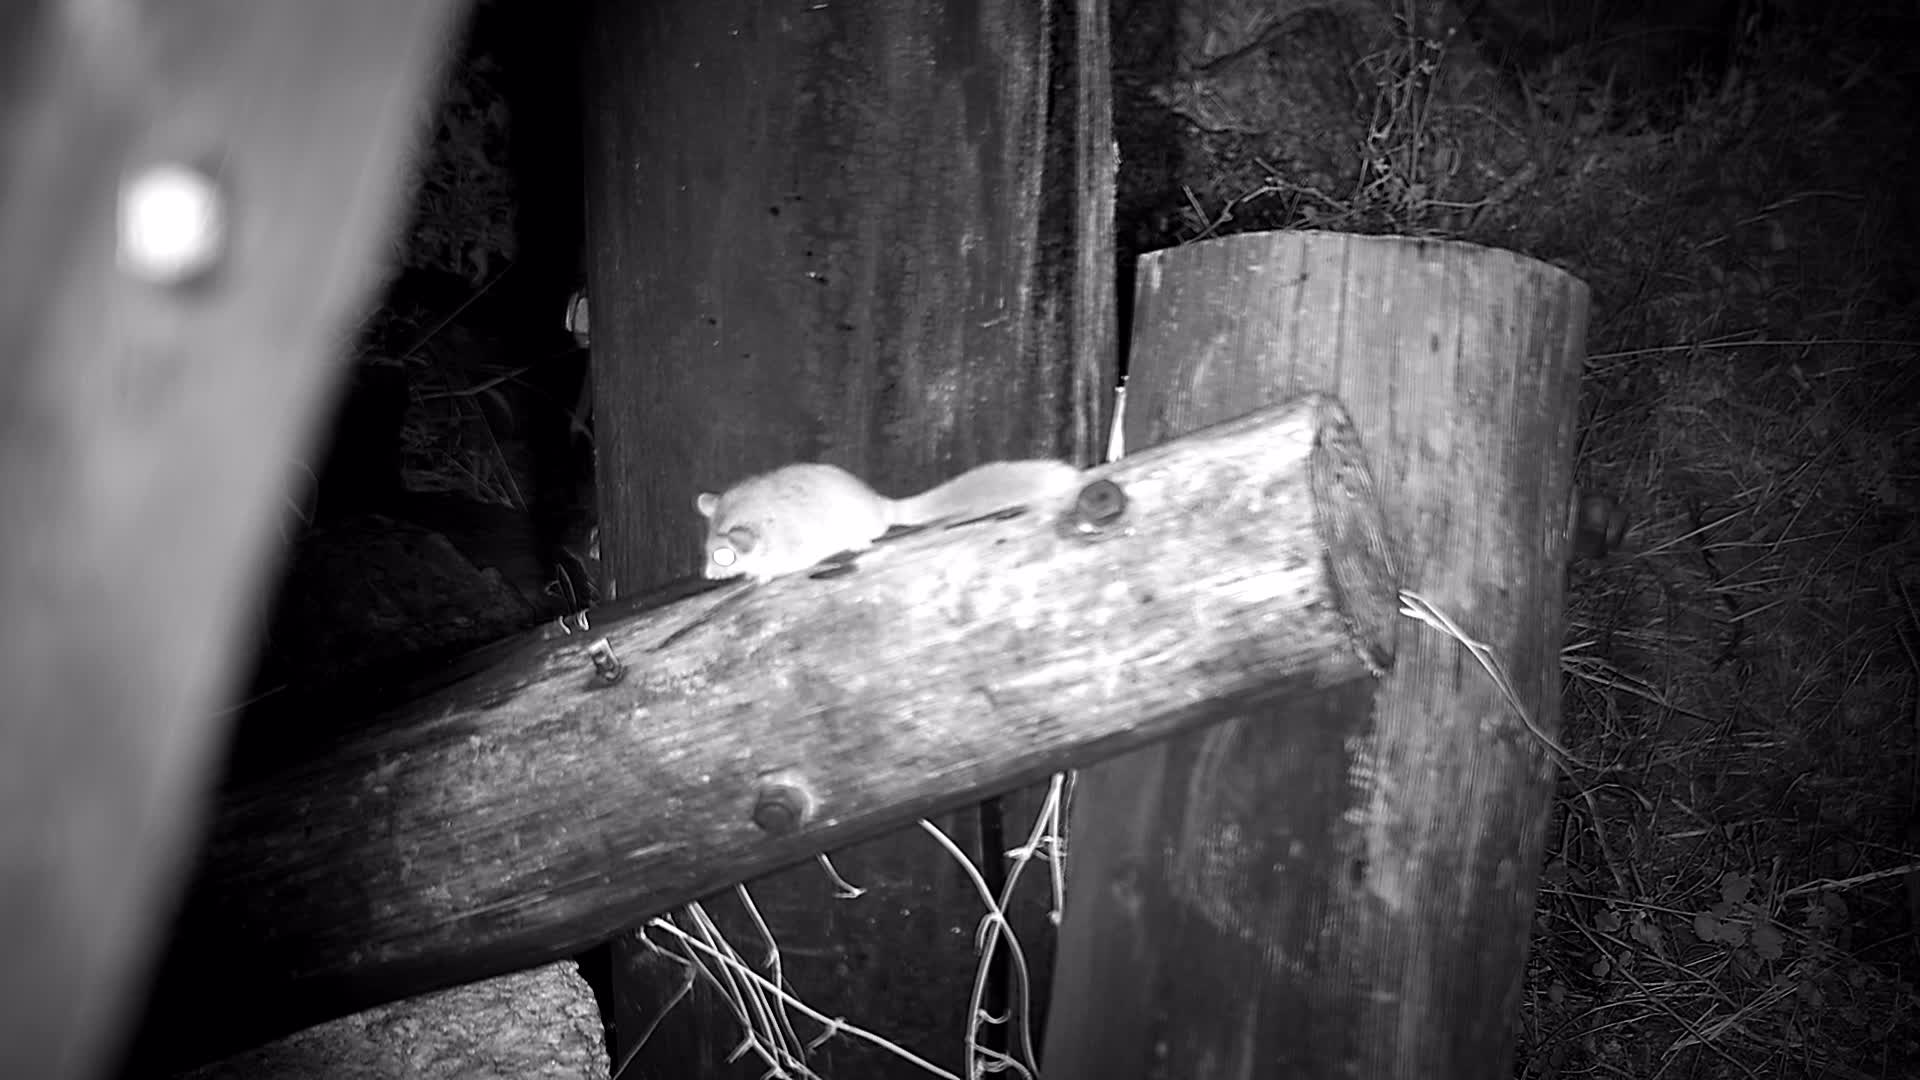 VIDEO: Alert Woodland Dormouse